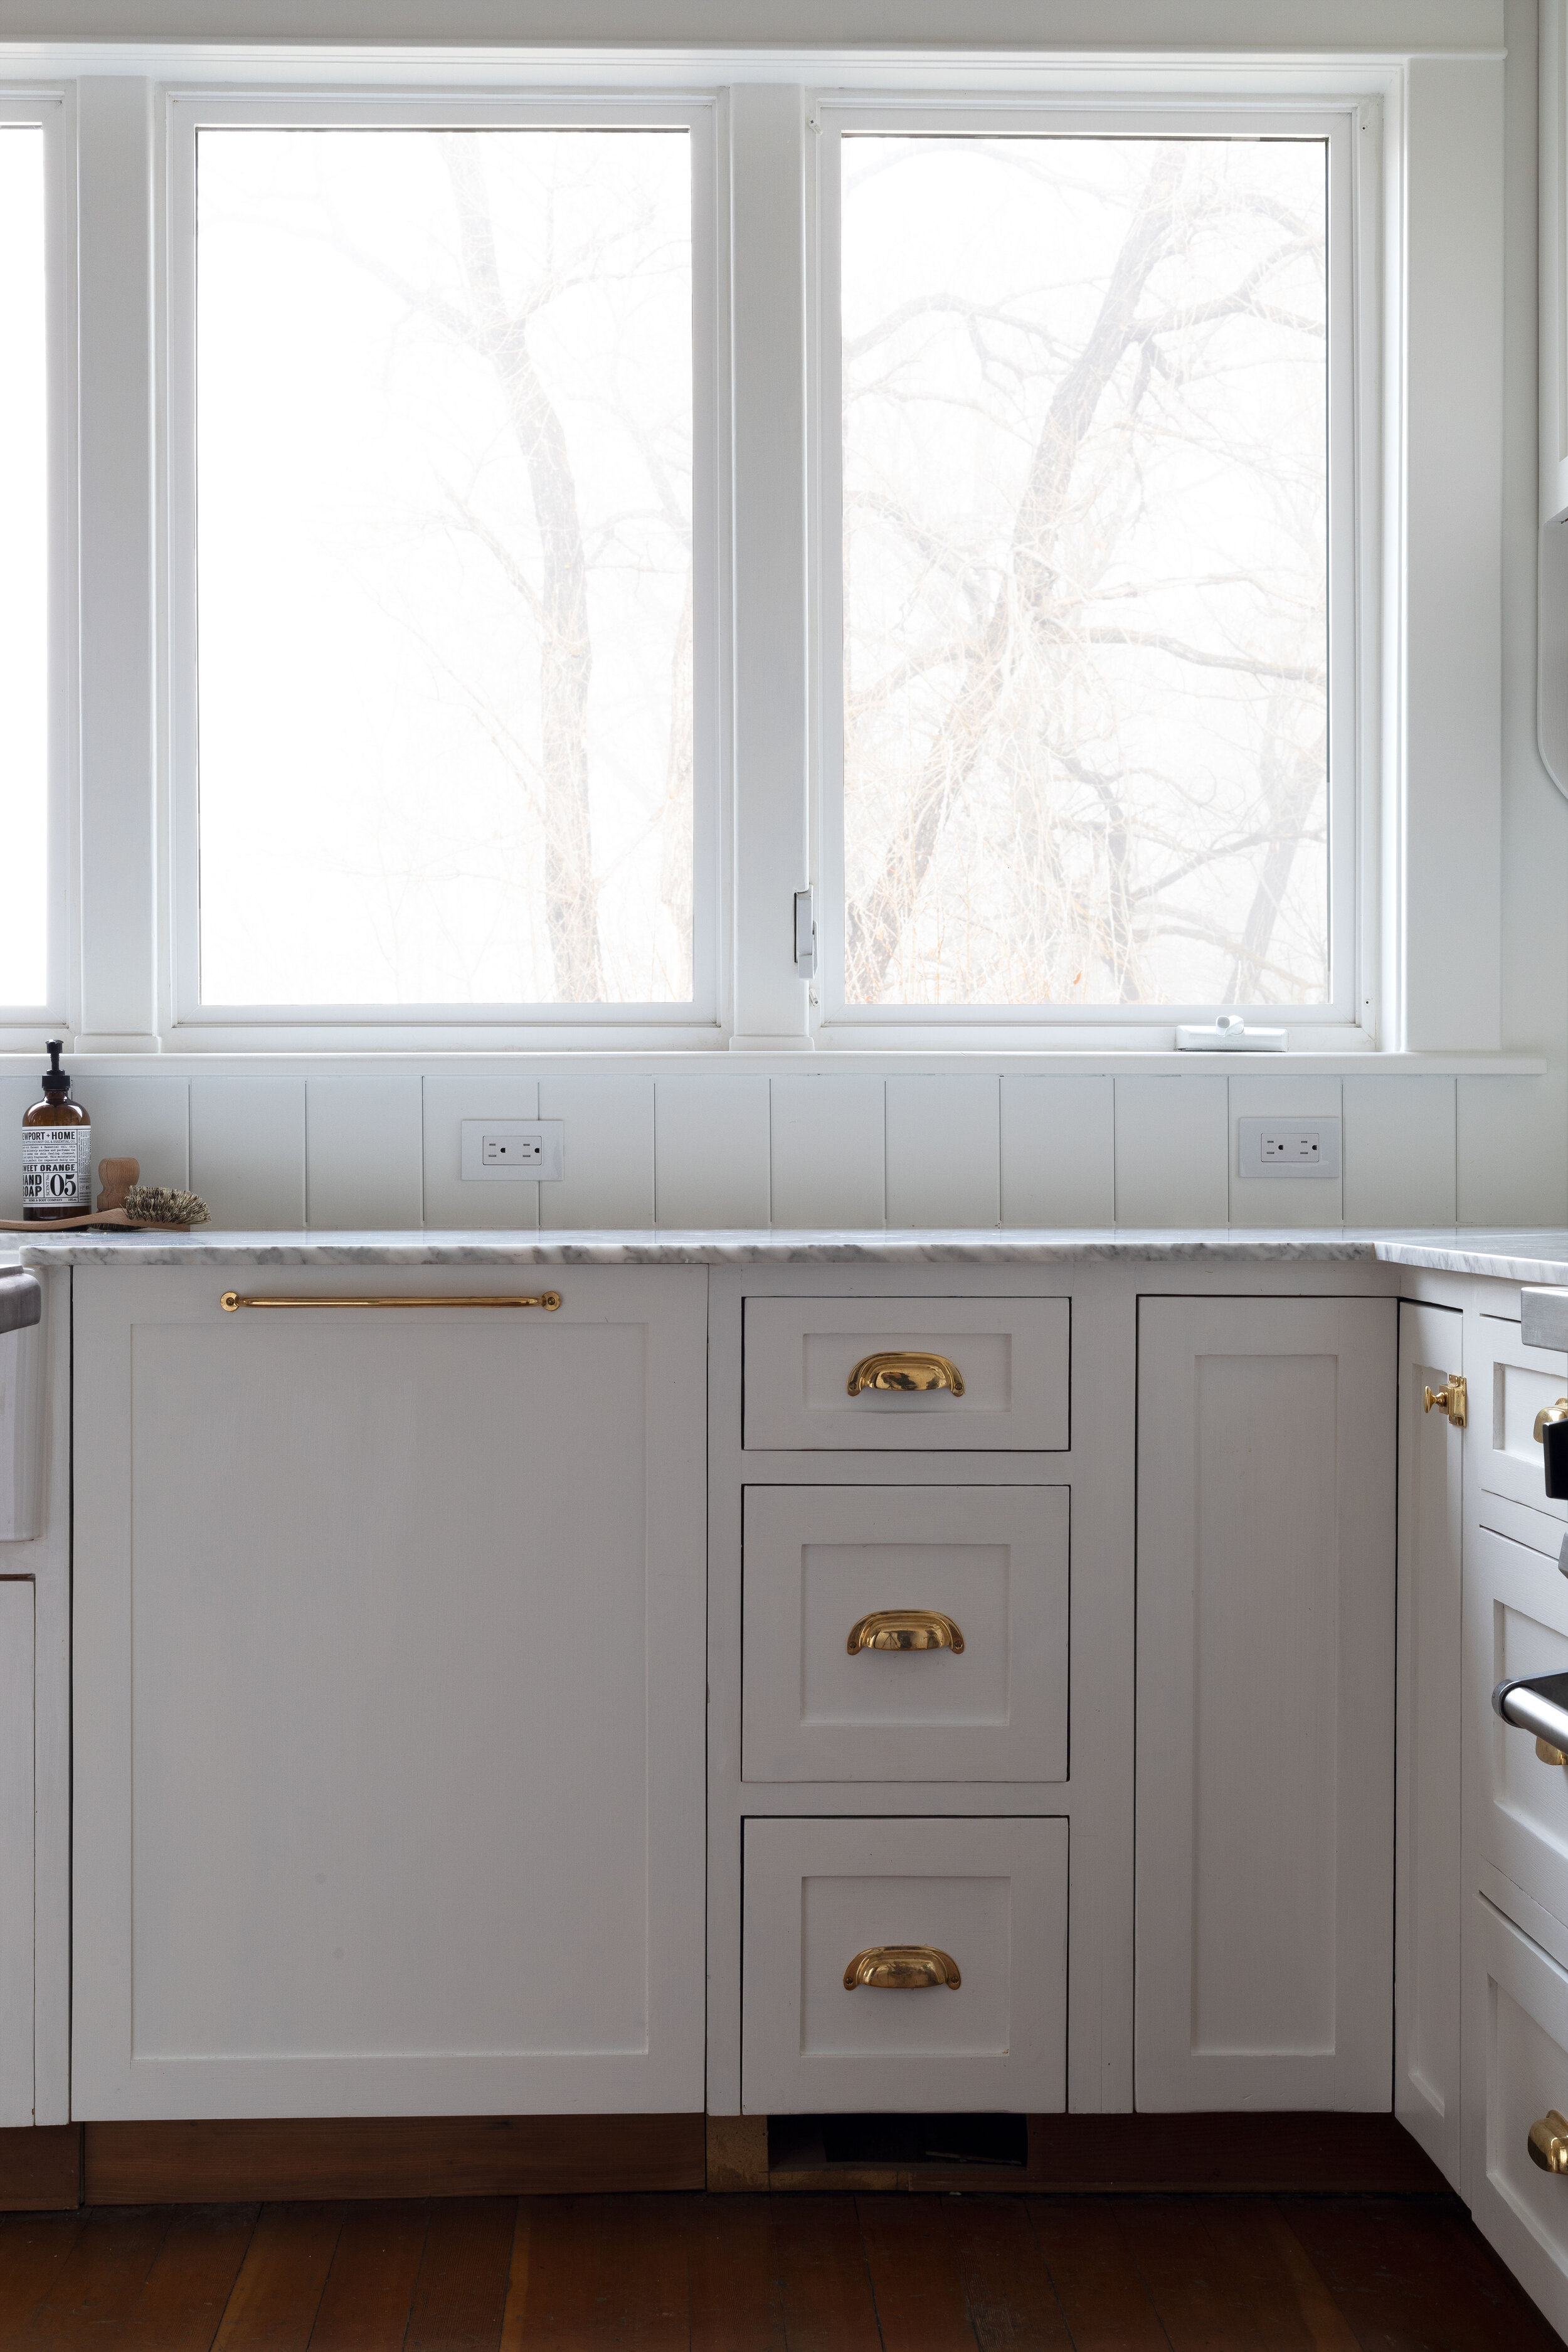 The-Grit-and-Polish---Farmhouse-Country-Kitchen-Reveal-Dishwasher-Panel.jpg